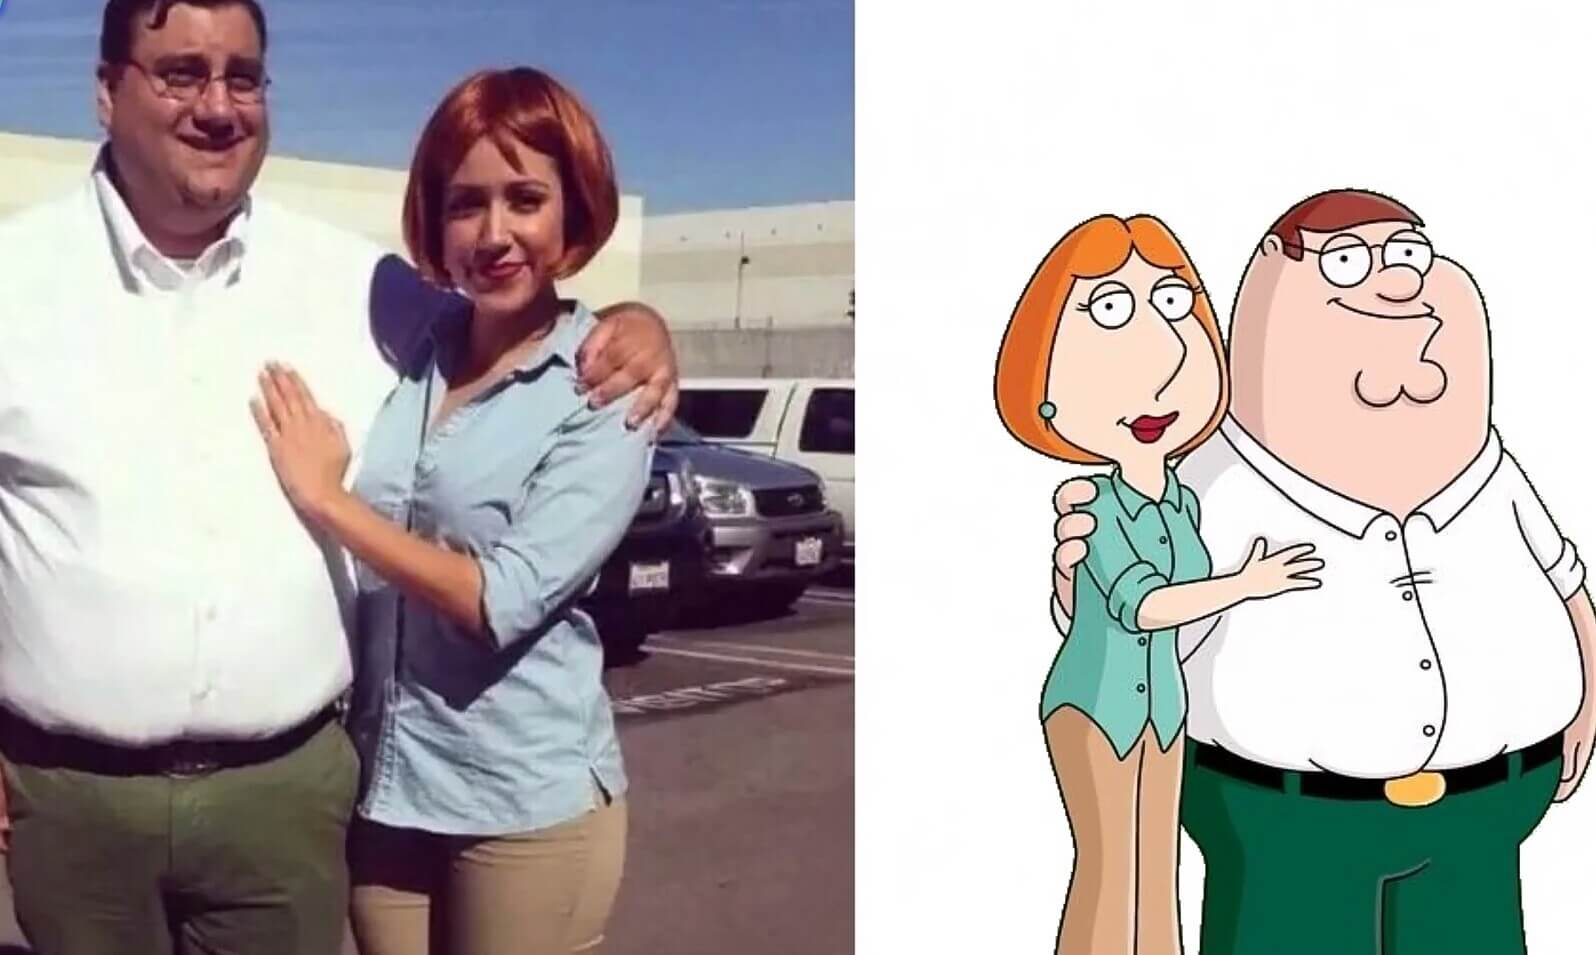 20 Amazing Cosplays That Look Extremely Similar To The Original Cartoons - When you see that couple down the street